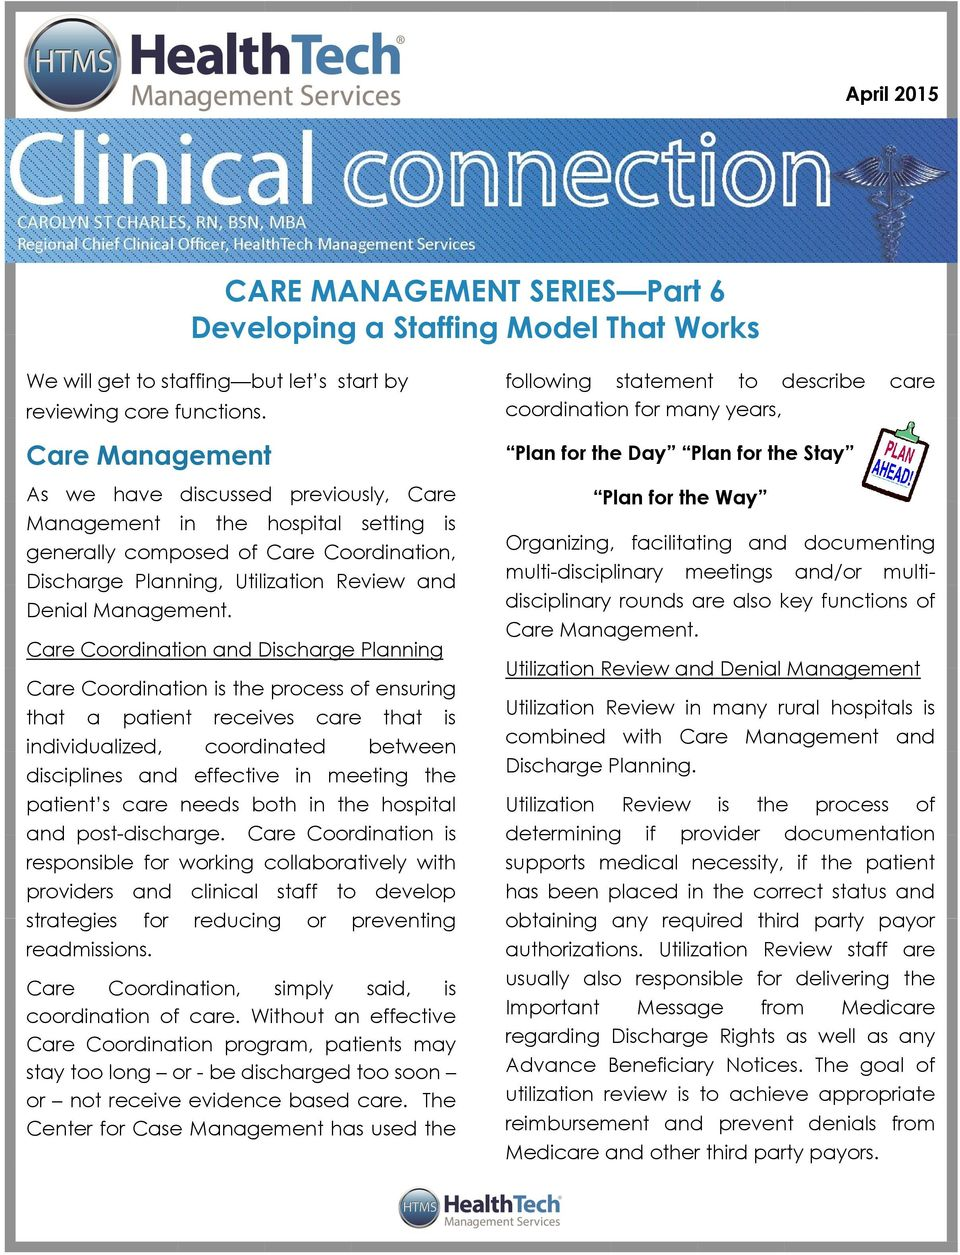 Care Coordination and Discharge Planning Care Coordination is the process of ensuring that a patient receives care that is individualized, coordinated between disciplines and effective in meeting the